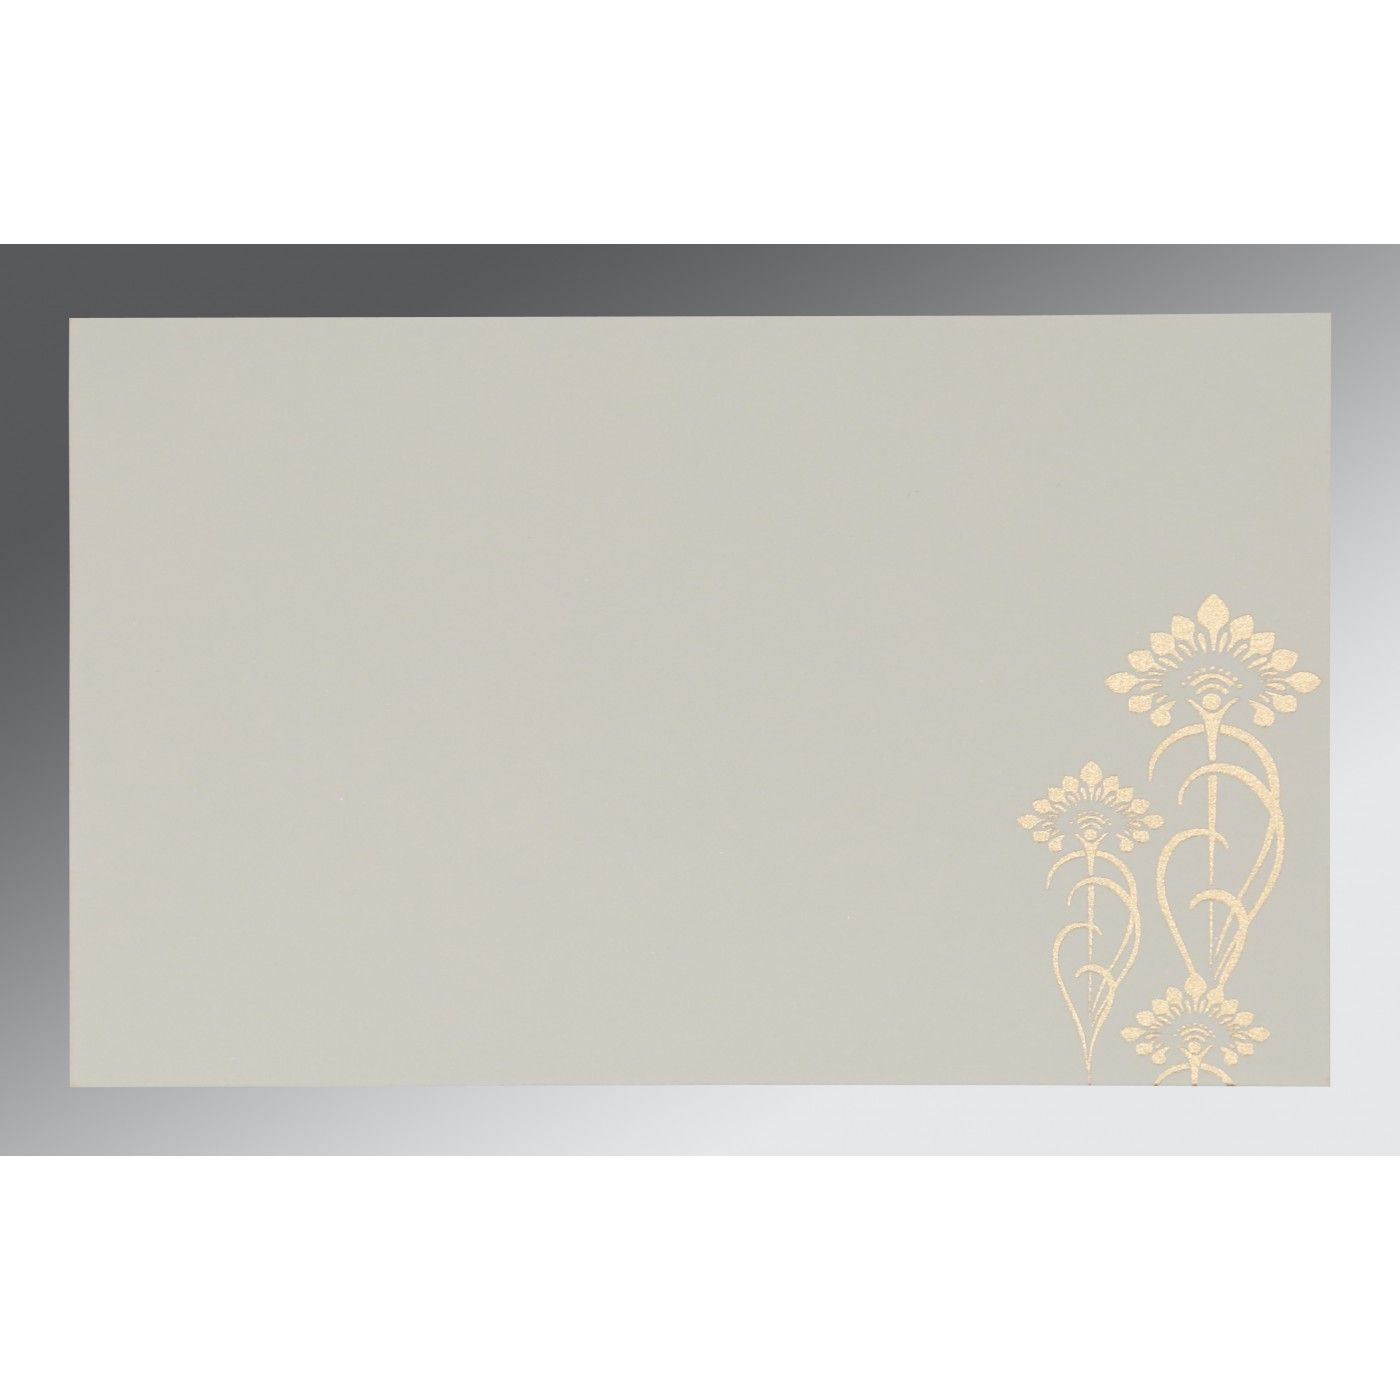 COPPER SHIMMERY SCREEN PRINTED WEDDING CARD : CG-8239H - IndianWeddingCards